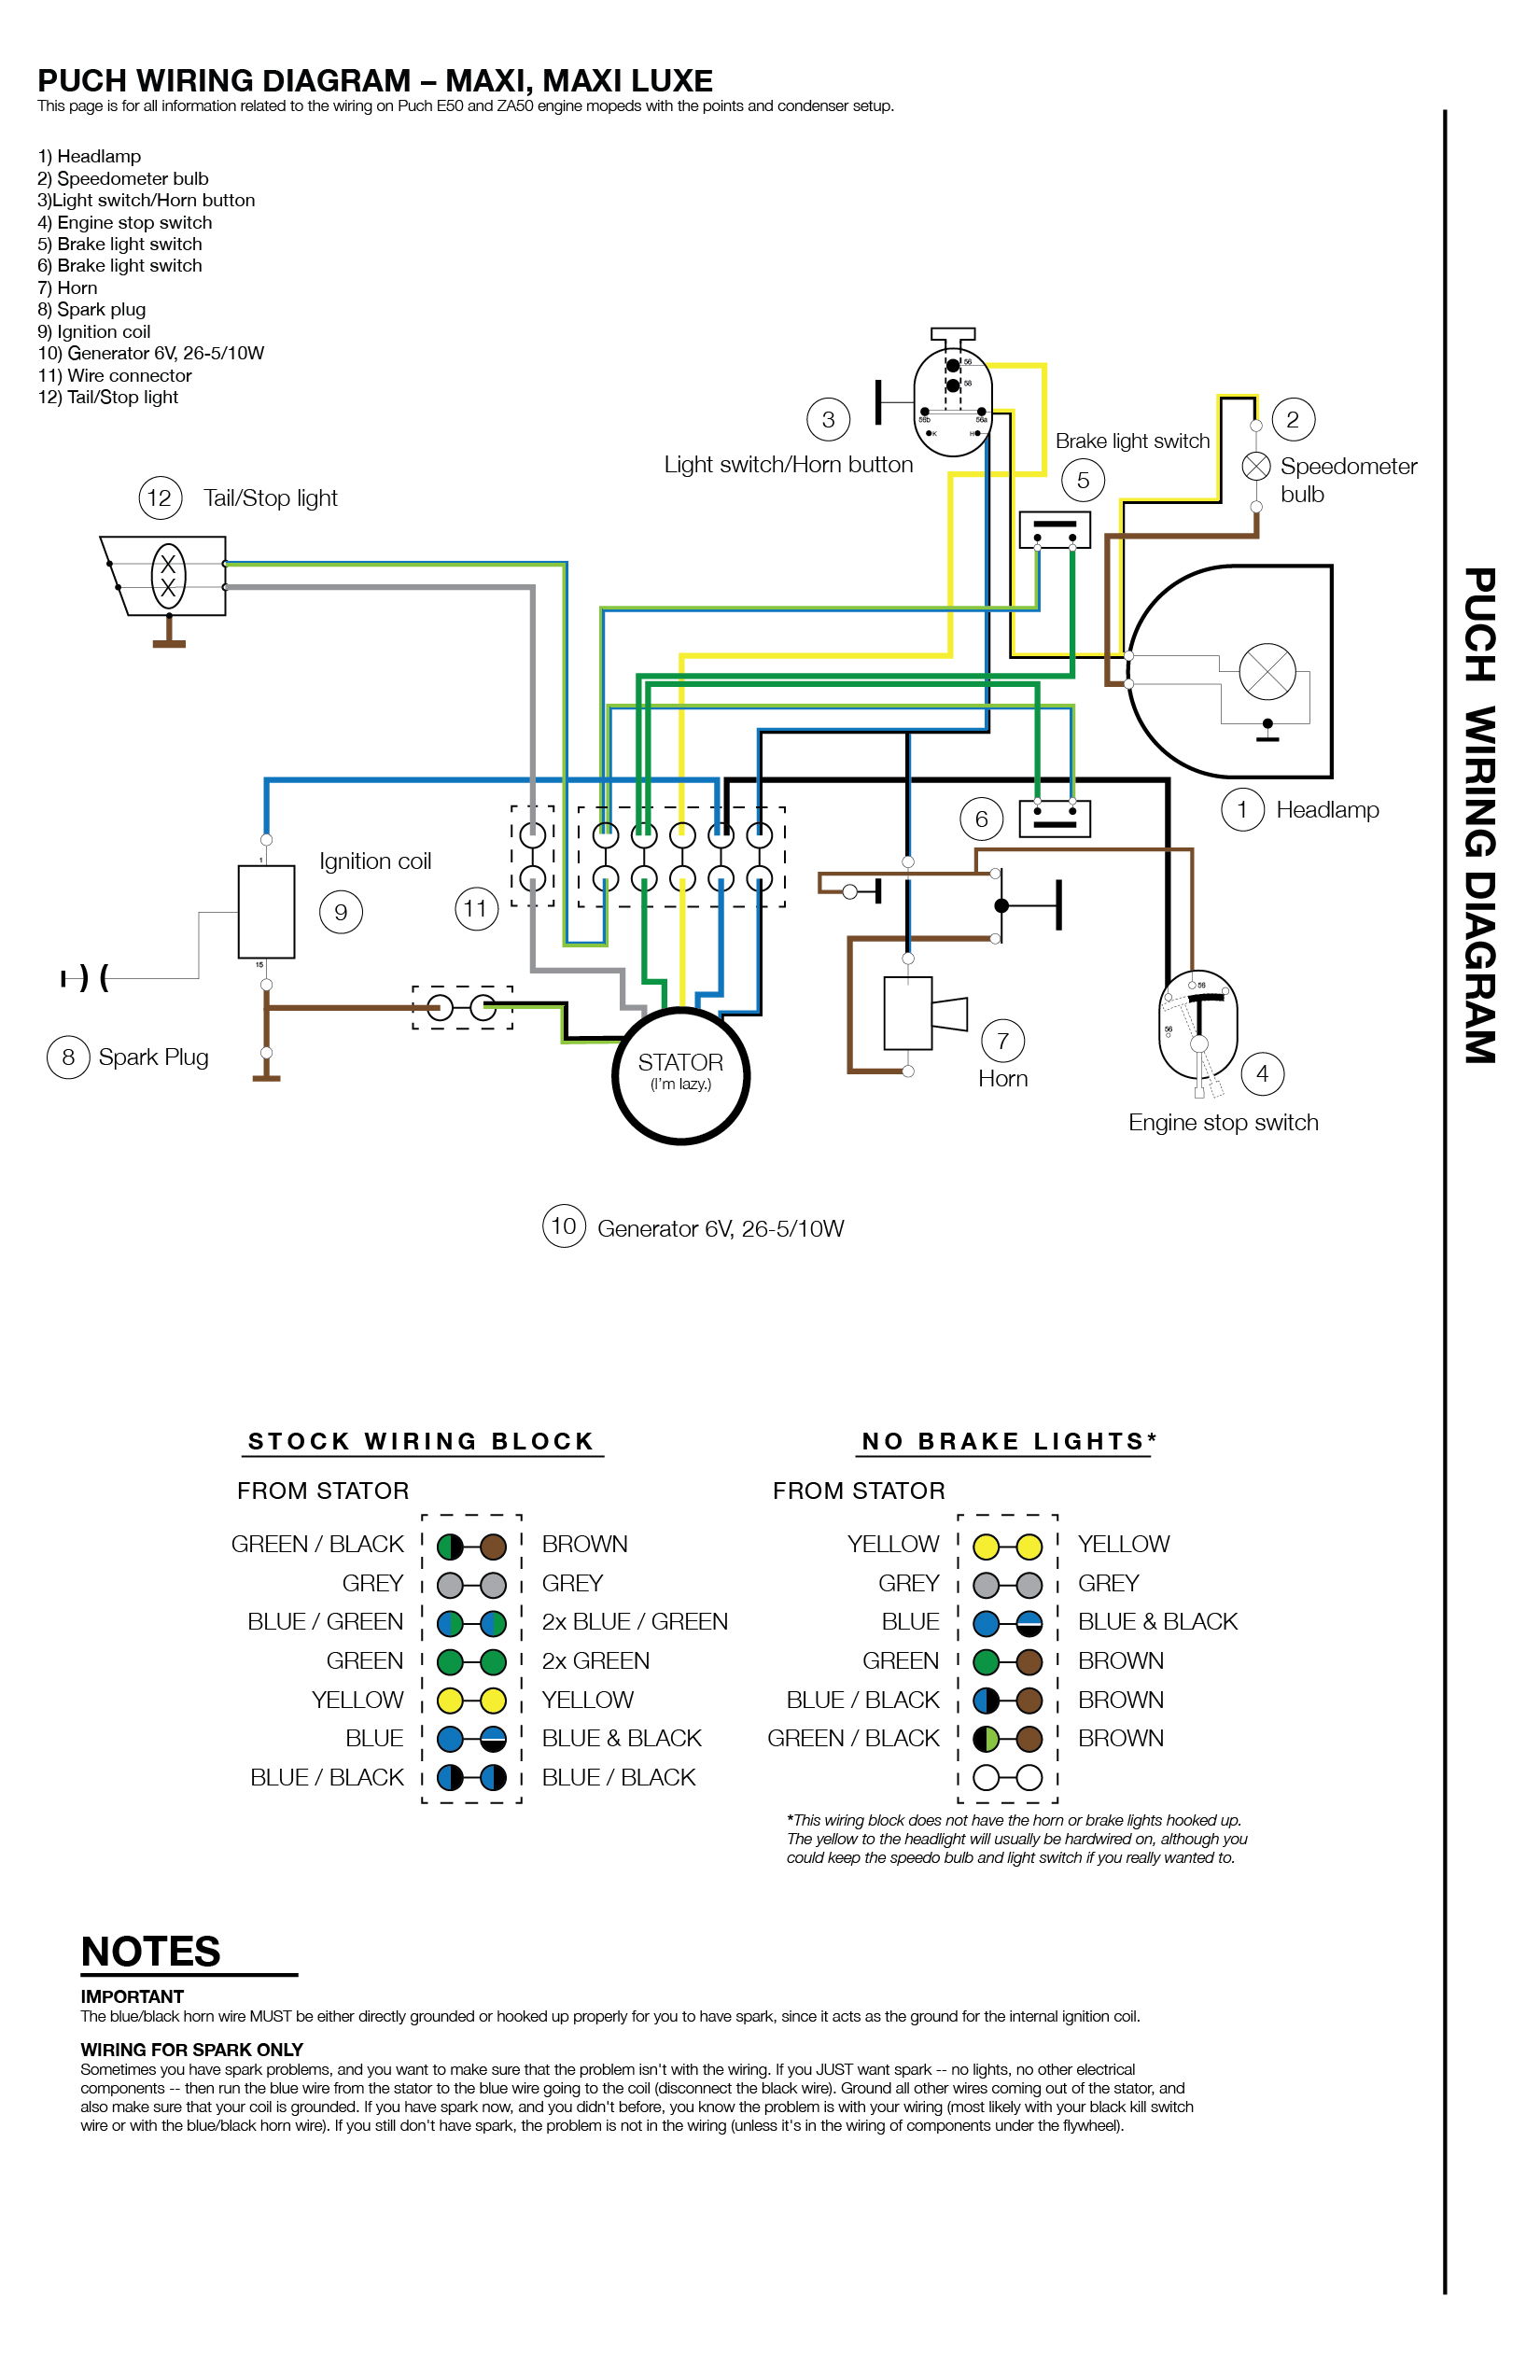 Puch wiring - Moped Wiki on horn installation diagram, air horn diagram, car horn diagram, horn assembly diagram, horn parts, horn schematic, horn circuit, gm horn diagram, horn steering diagram, horn relay, horn safety, horn cover,